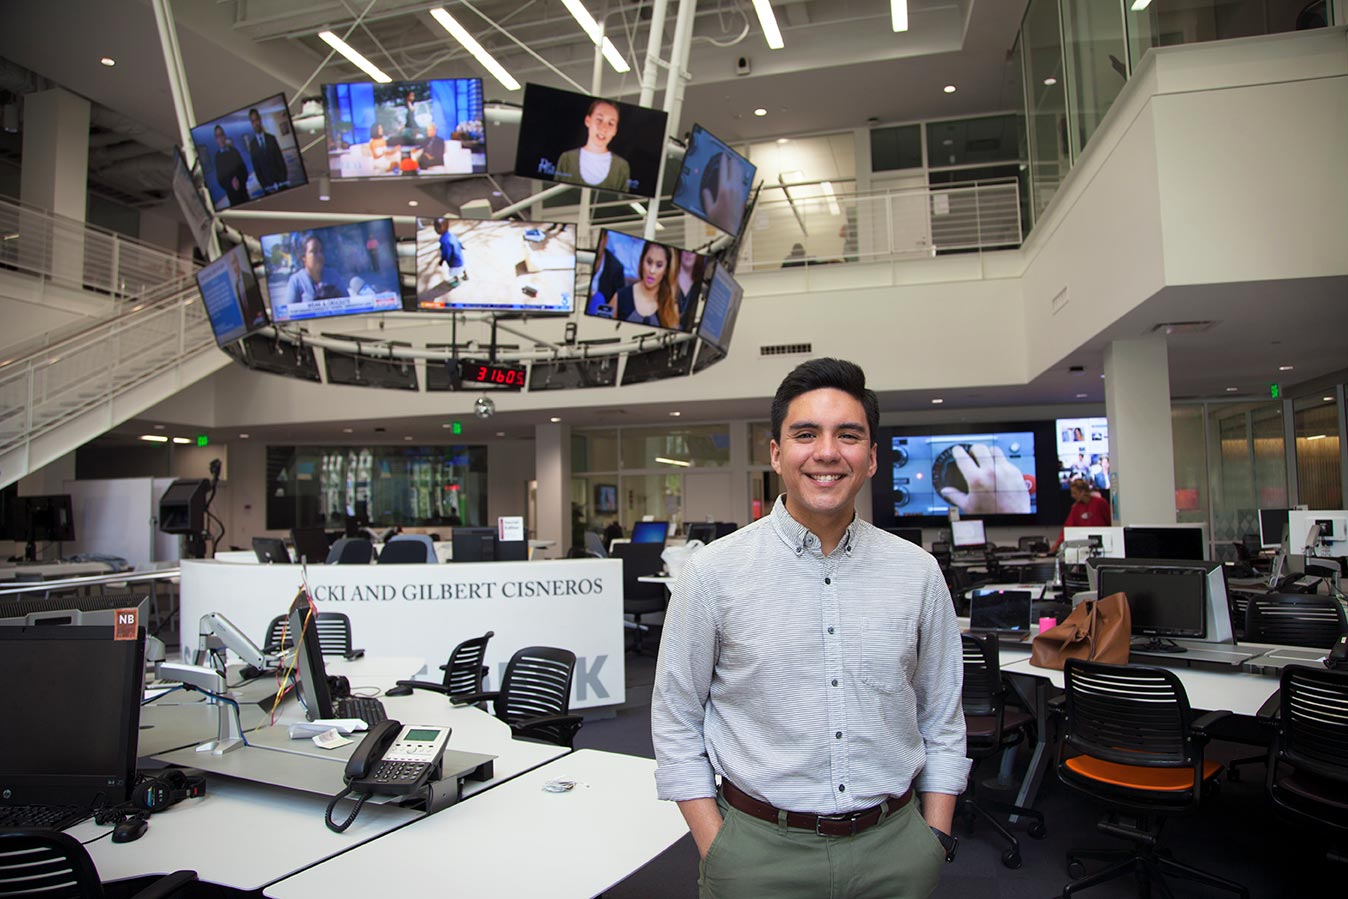 A digital journalist with big dreams | USC Annenberg School for Communication and Journalism